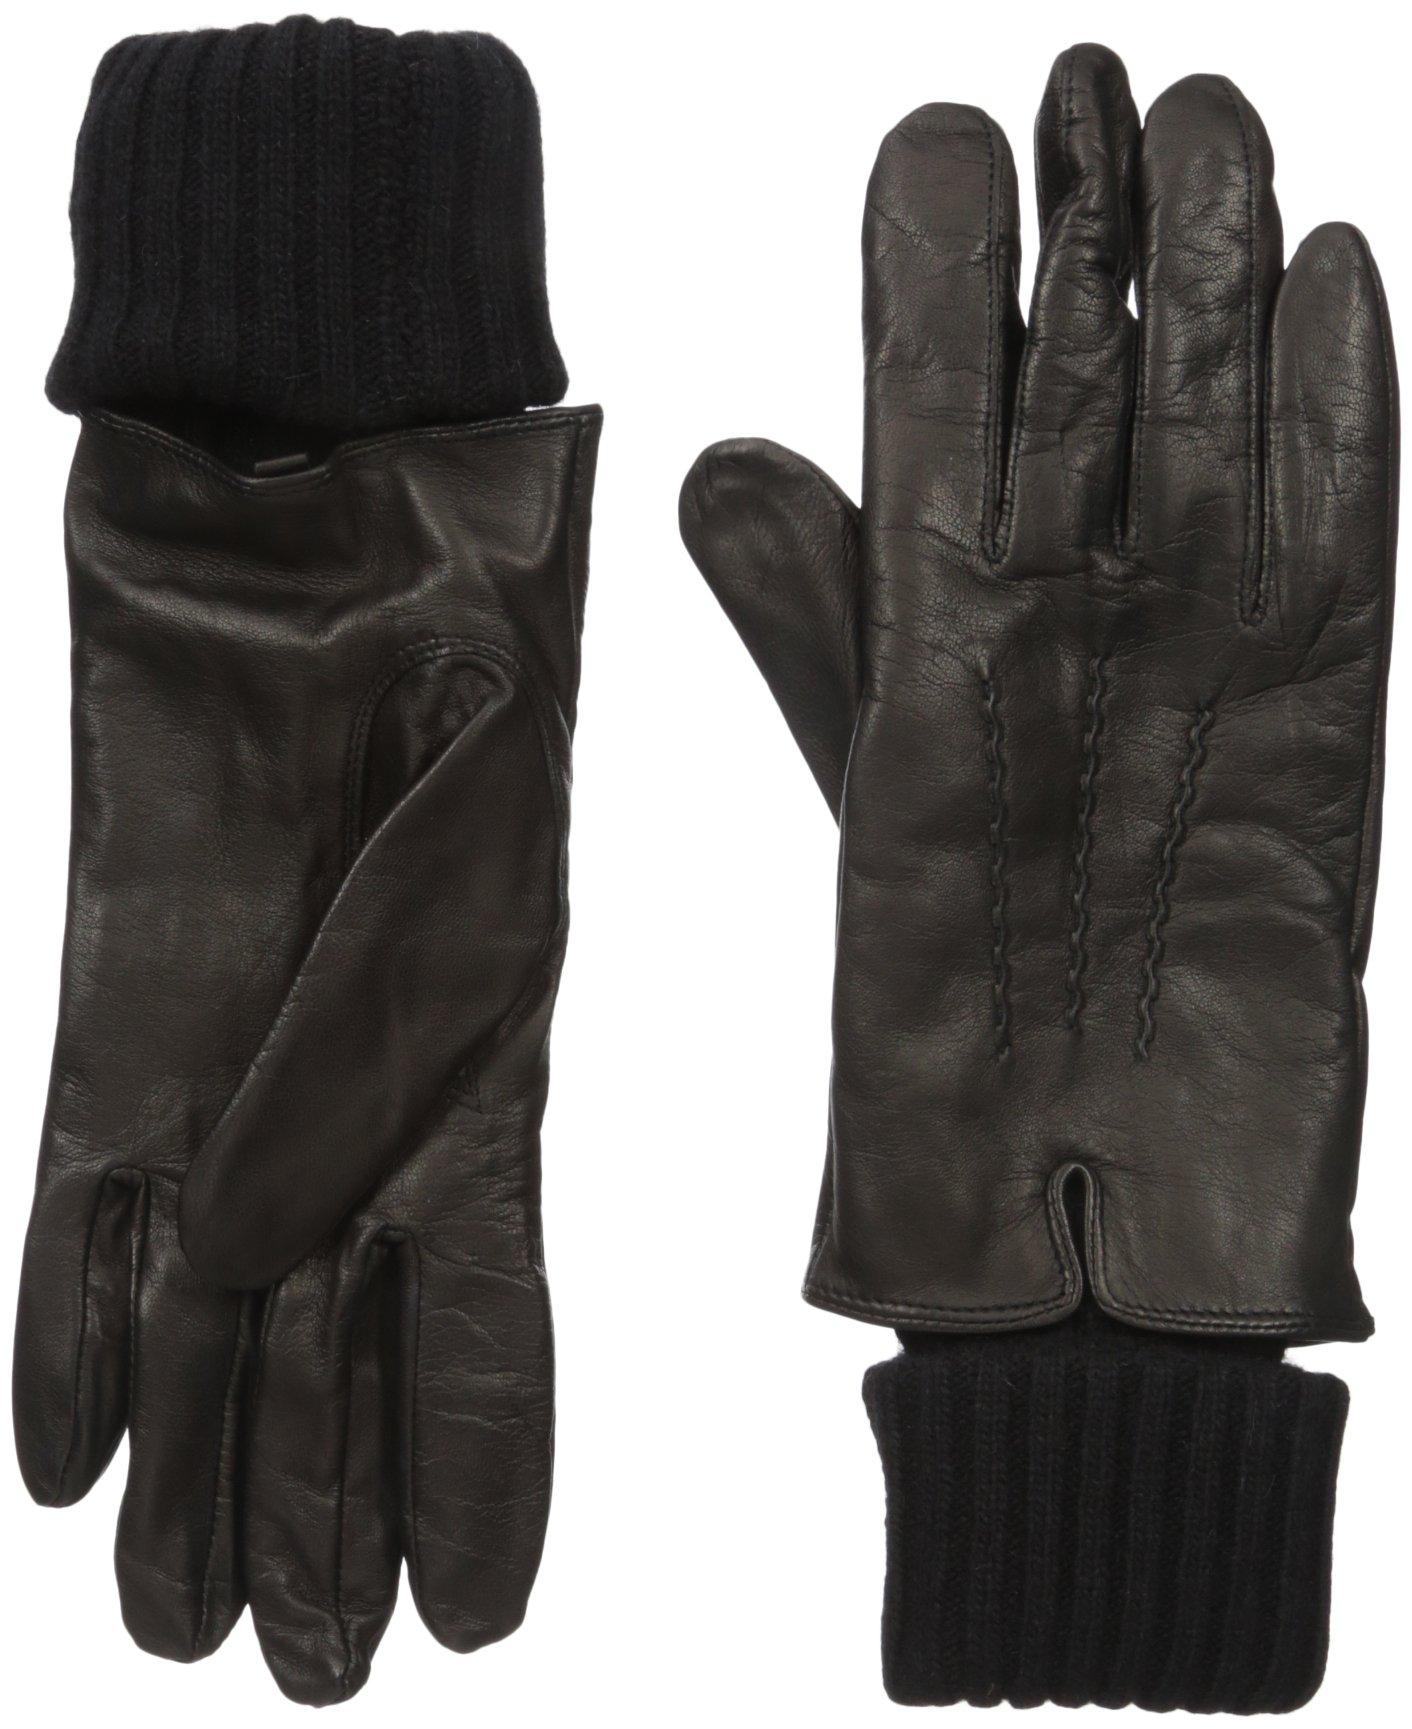 SOIA & KYO Women's Carmel-F6 Leather Glove with Fold-Over Rib Knit Sleeve, Black, Large